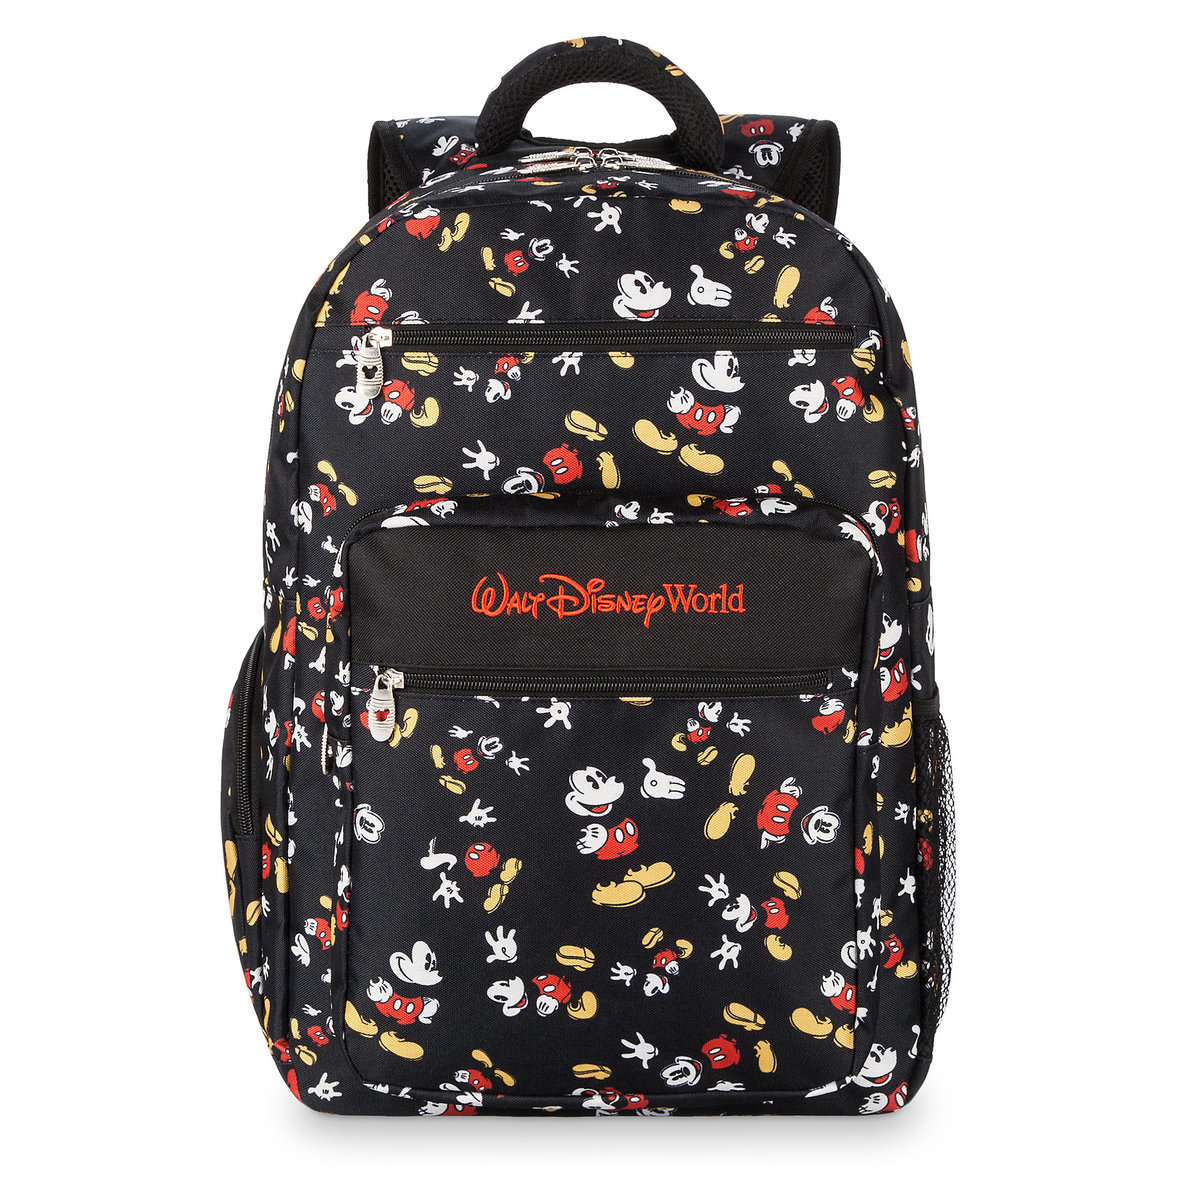 83dda41a25a Product Image of Mickey Mouse Backpack - Walt Disney World   1